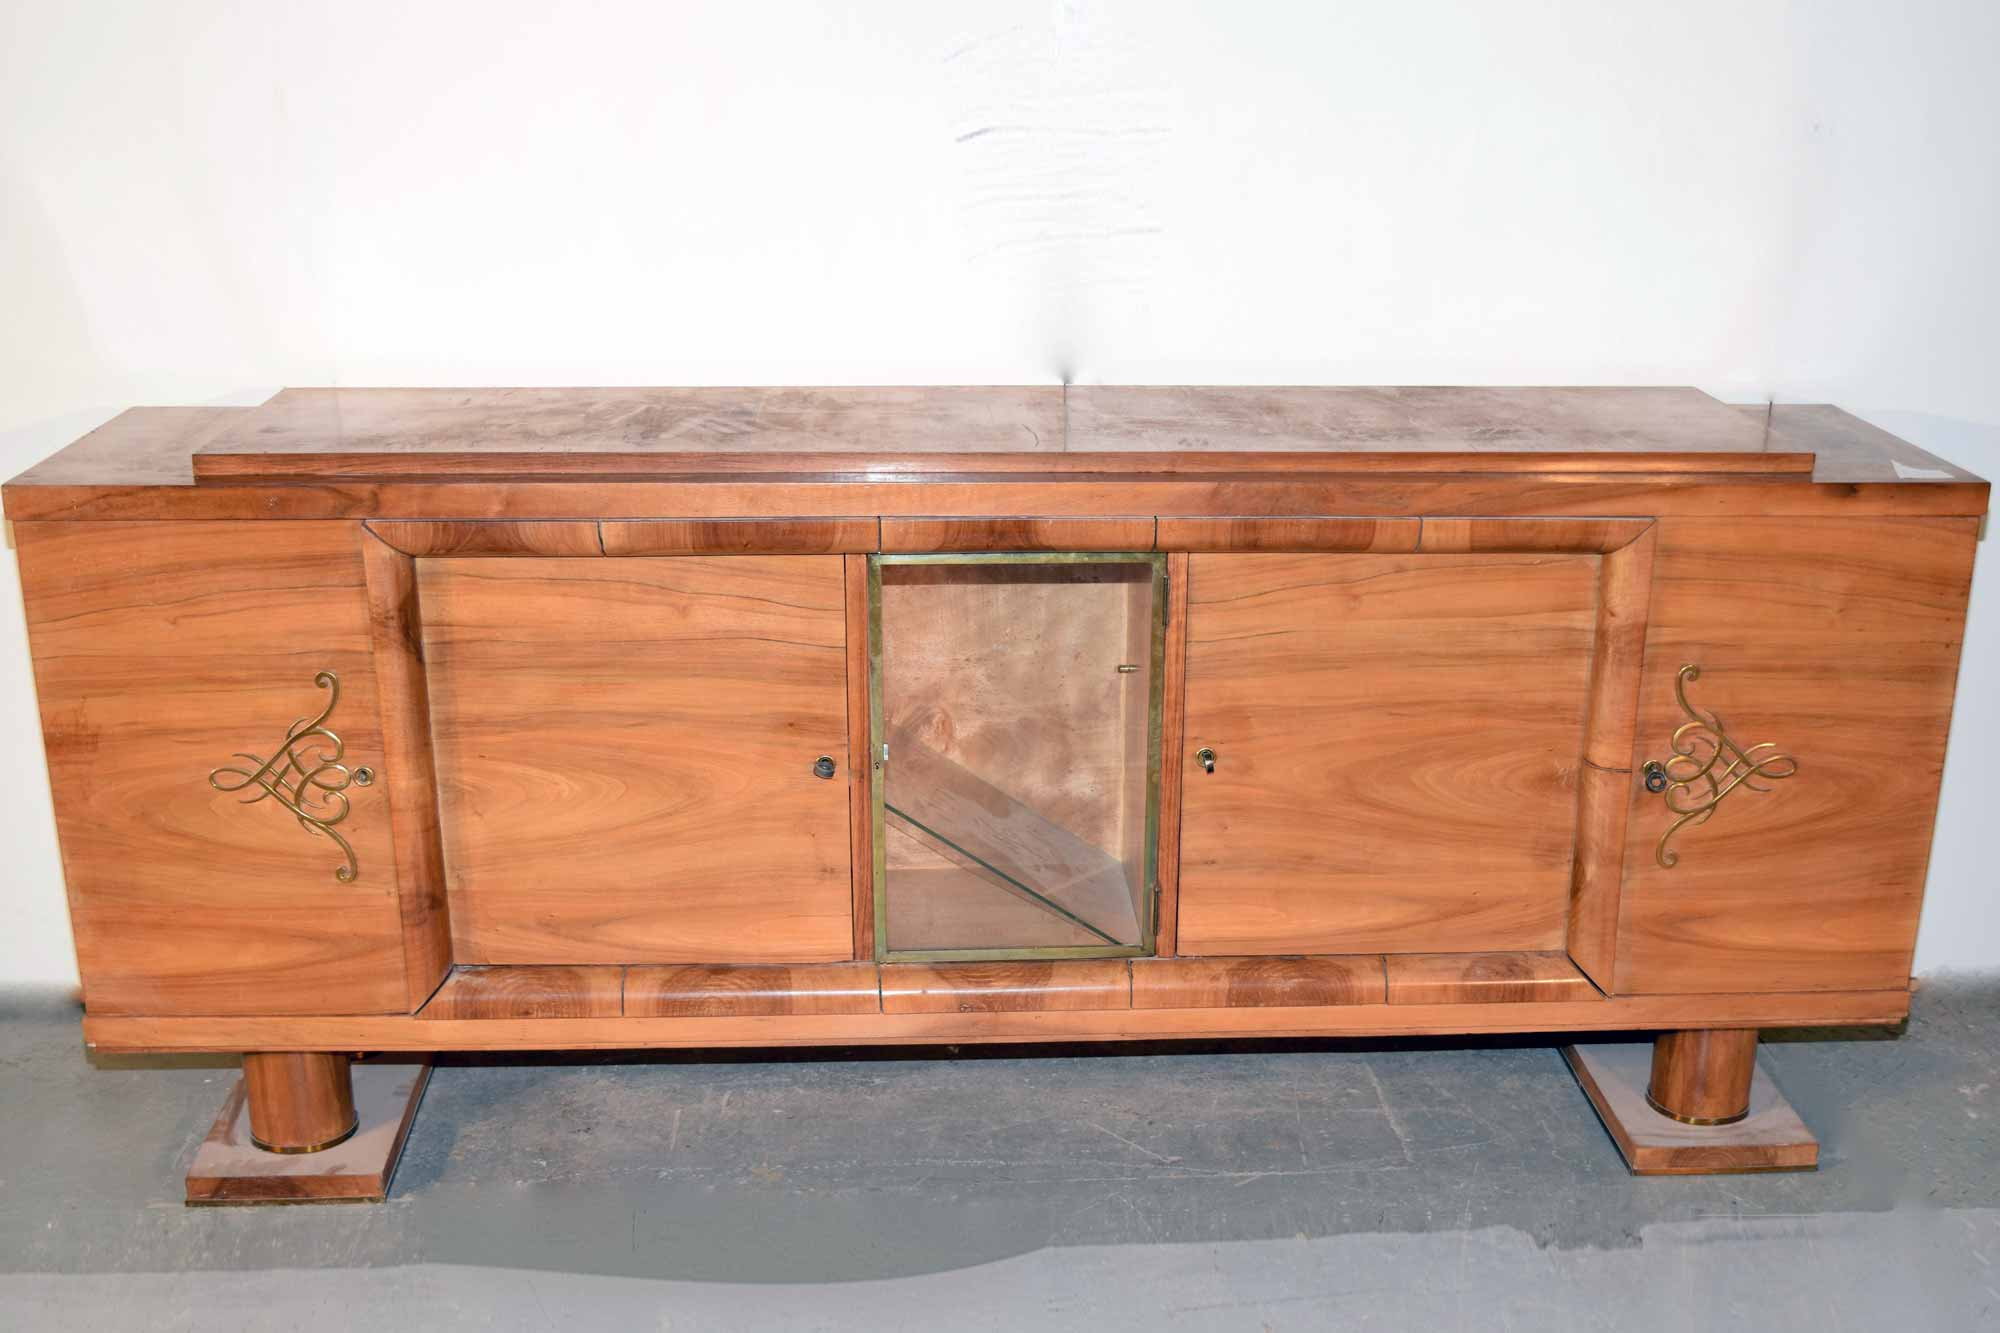 art deco sideboard nussbaum b231xh94xt51 panthers woods. Black Bedroom Furniture Sets. Home Design Ideas